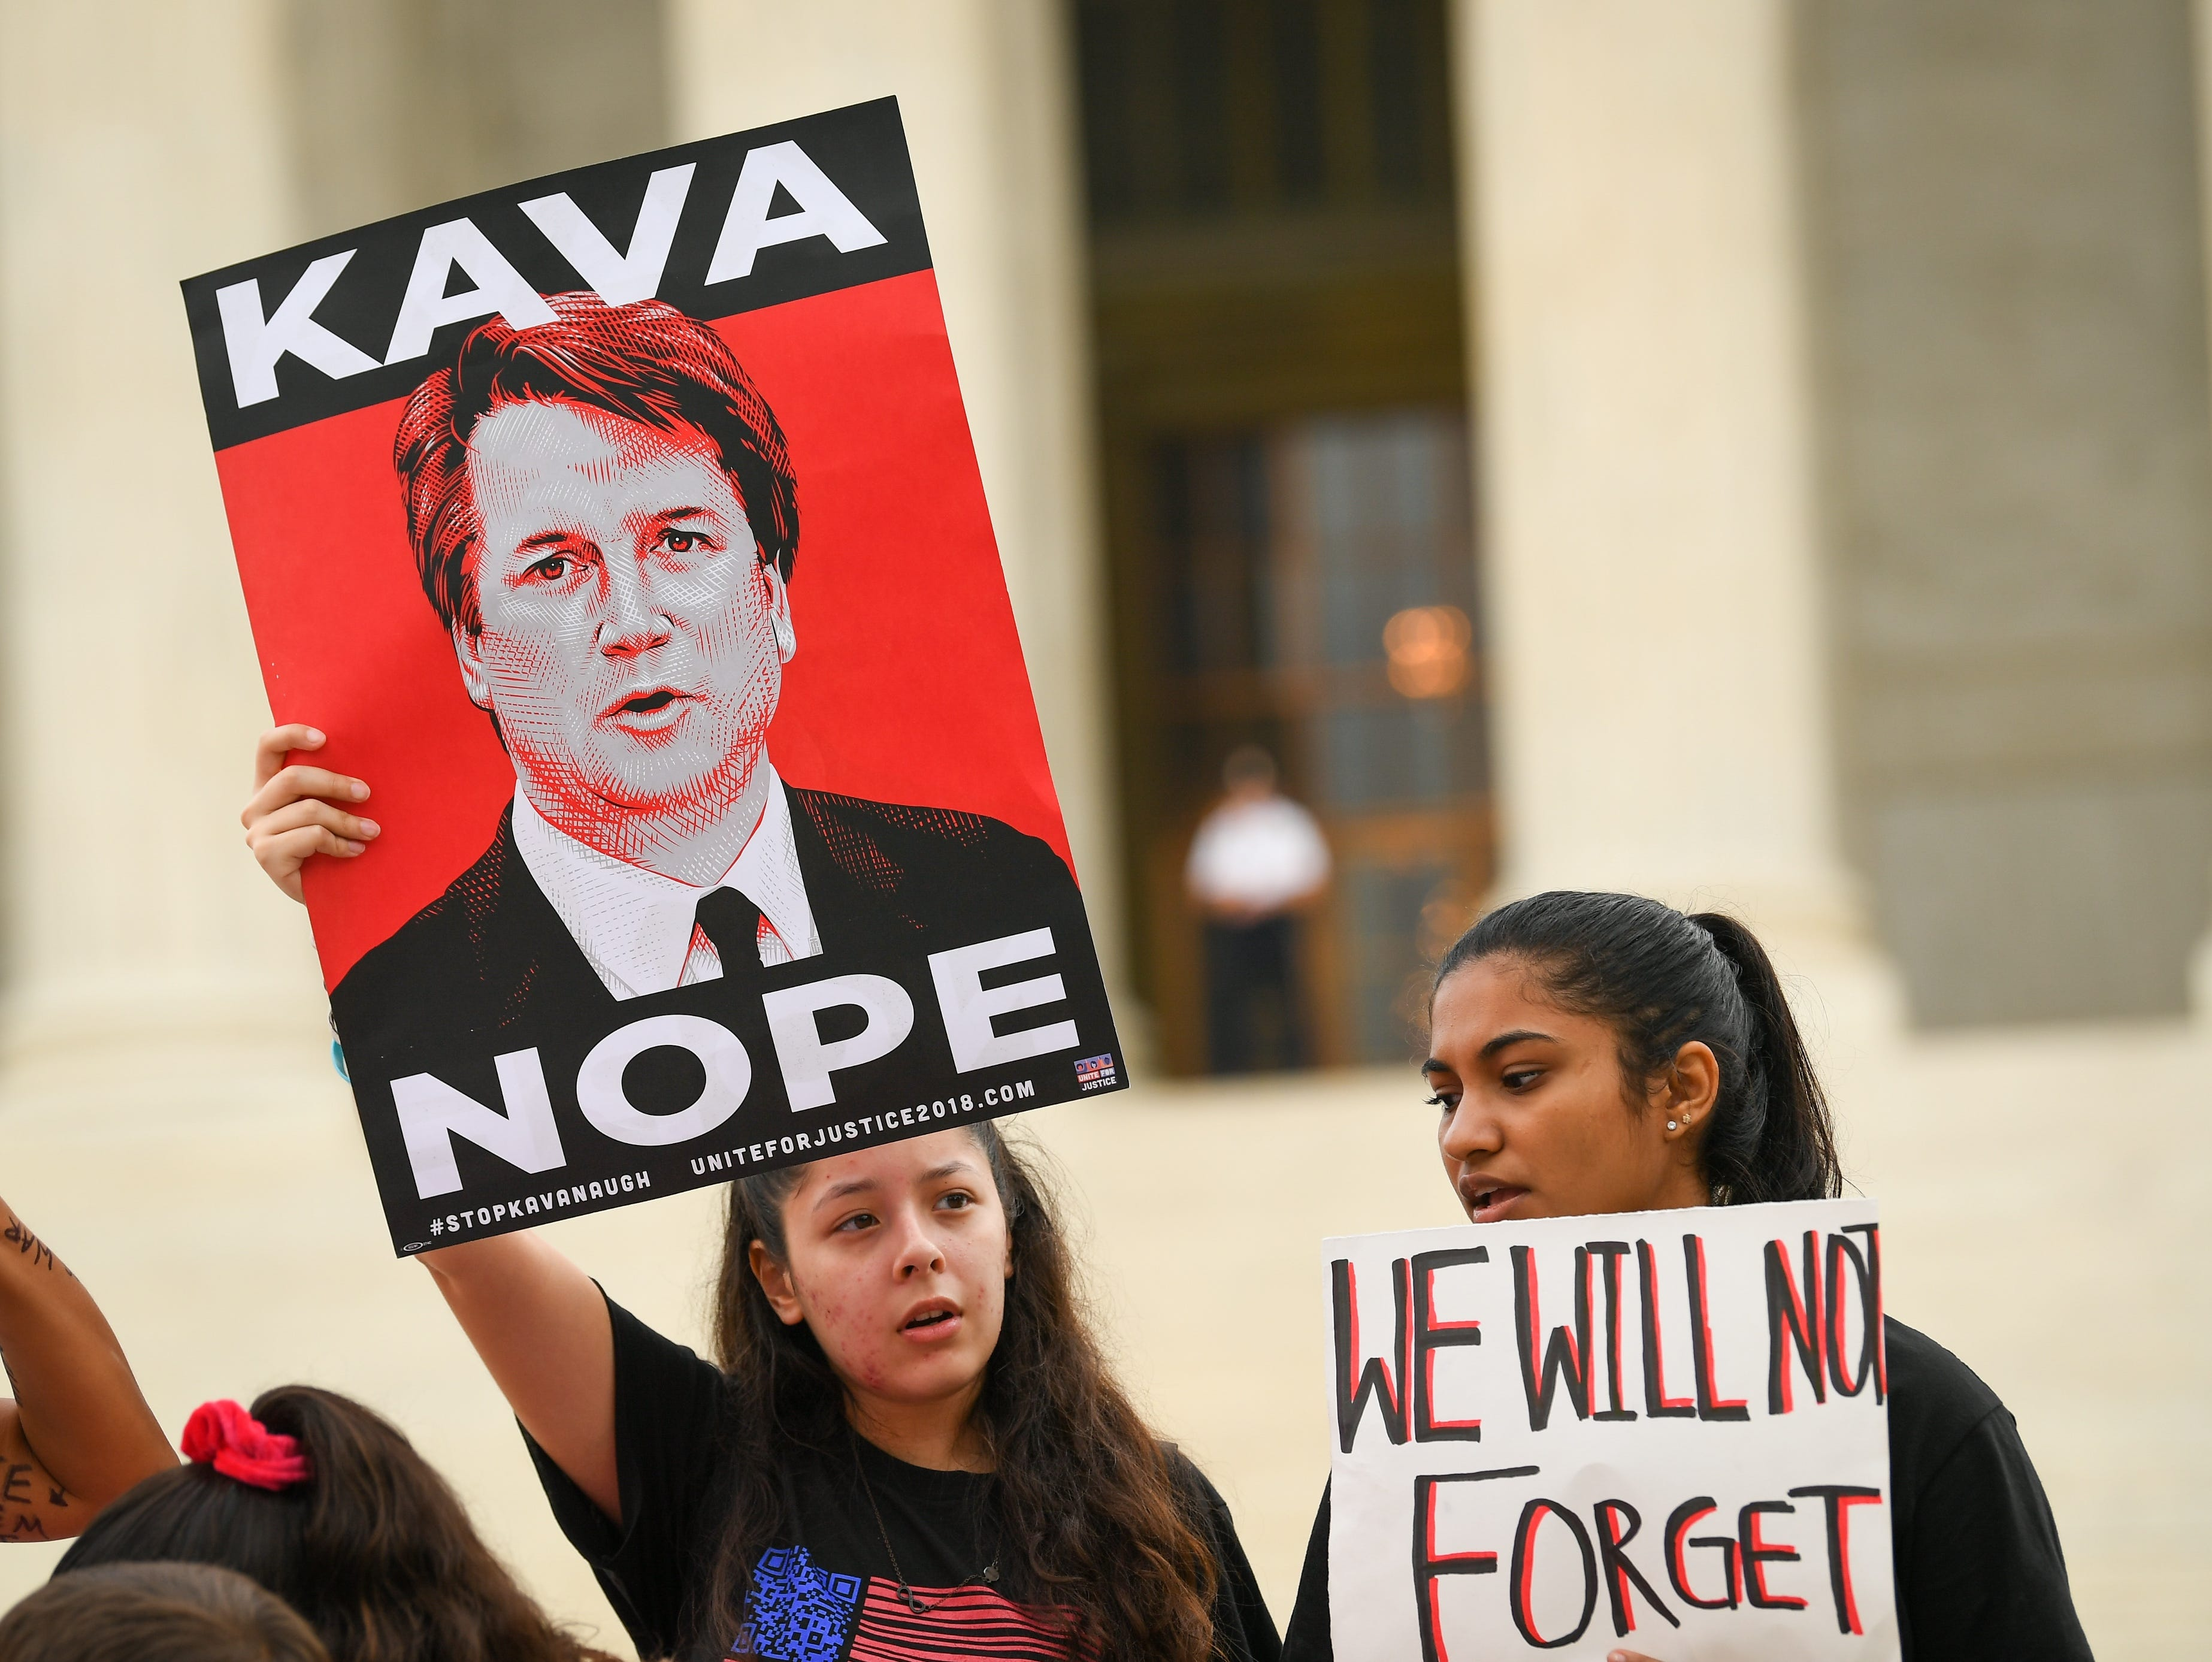 Midterms: 'Furious' Democrats purchase blitz of Facebook ads on Kavanaugh, far outpacing GOP spending